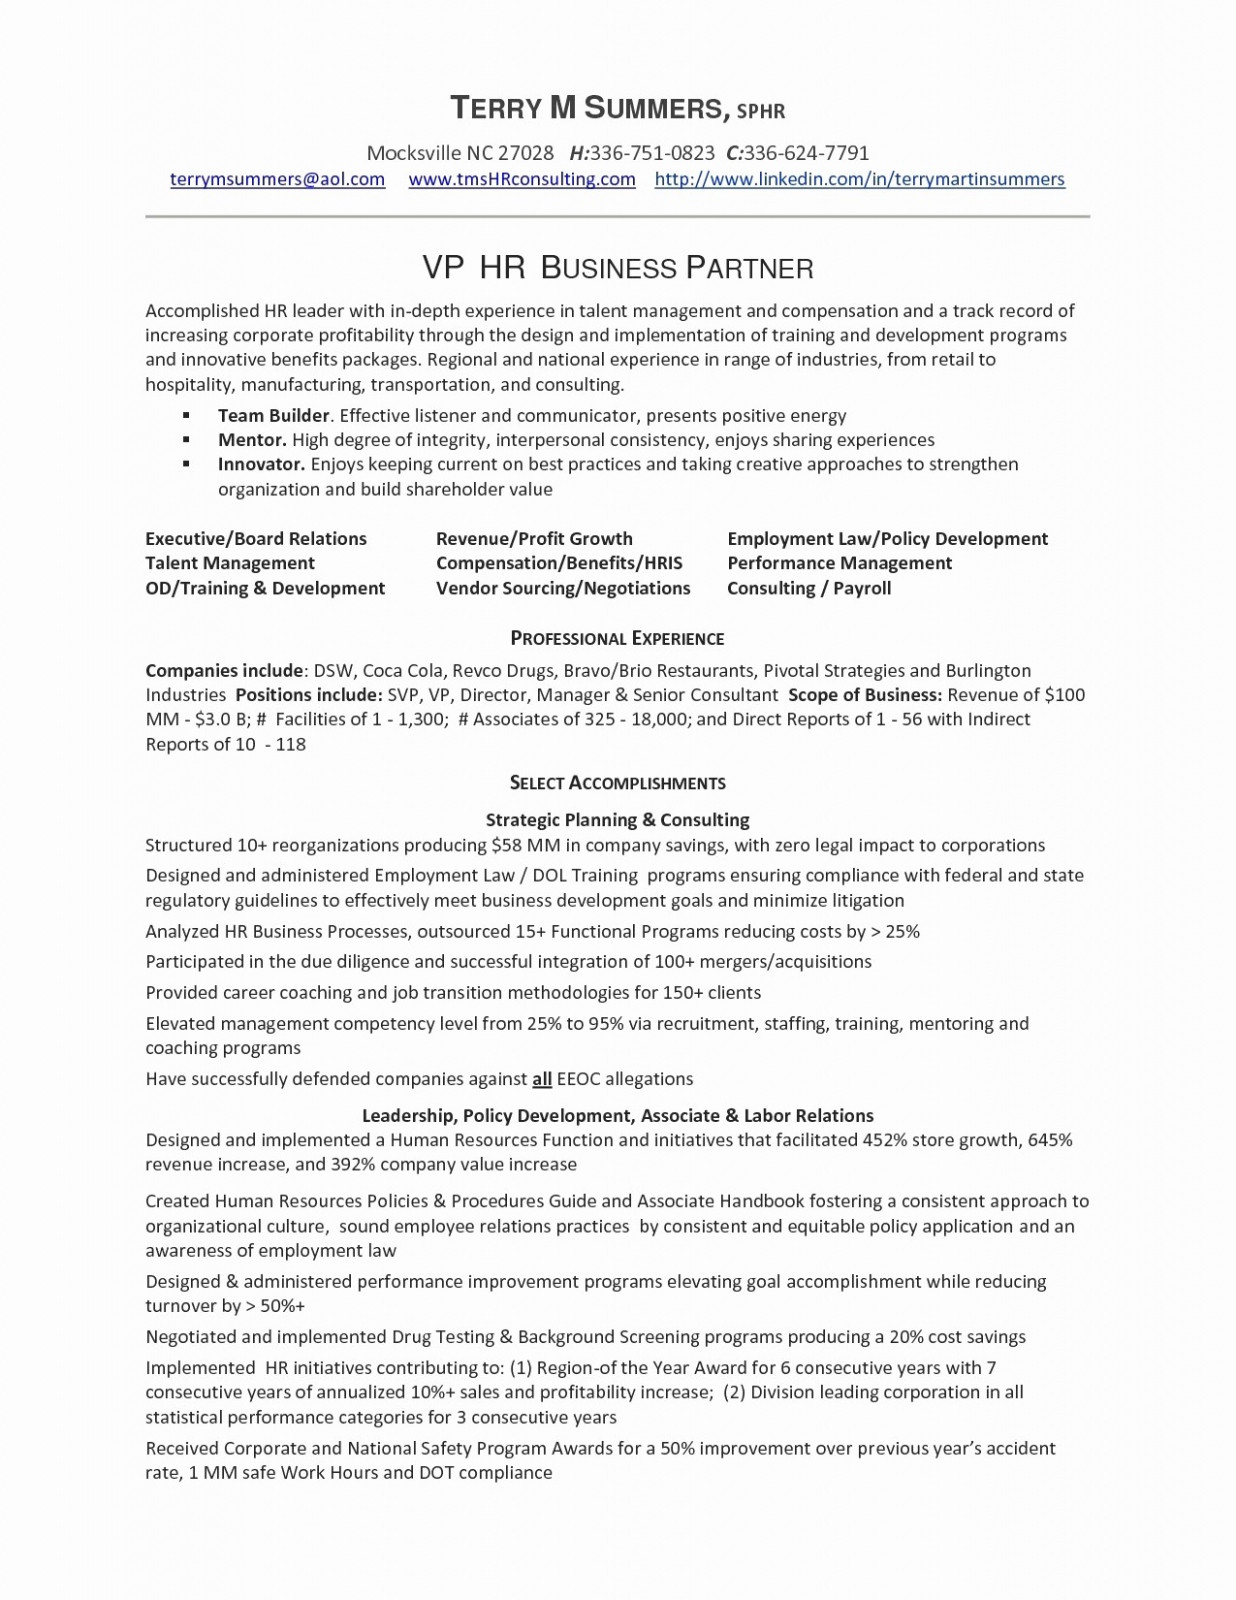 Resume Examples Service Industry - Property Management Resume Examples Reference Property Manager